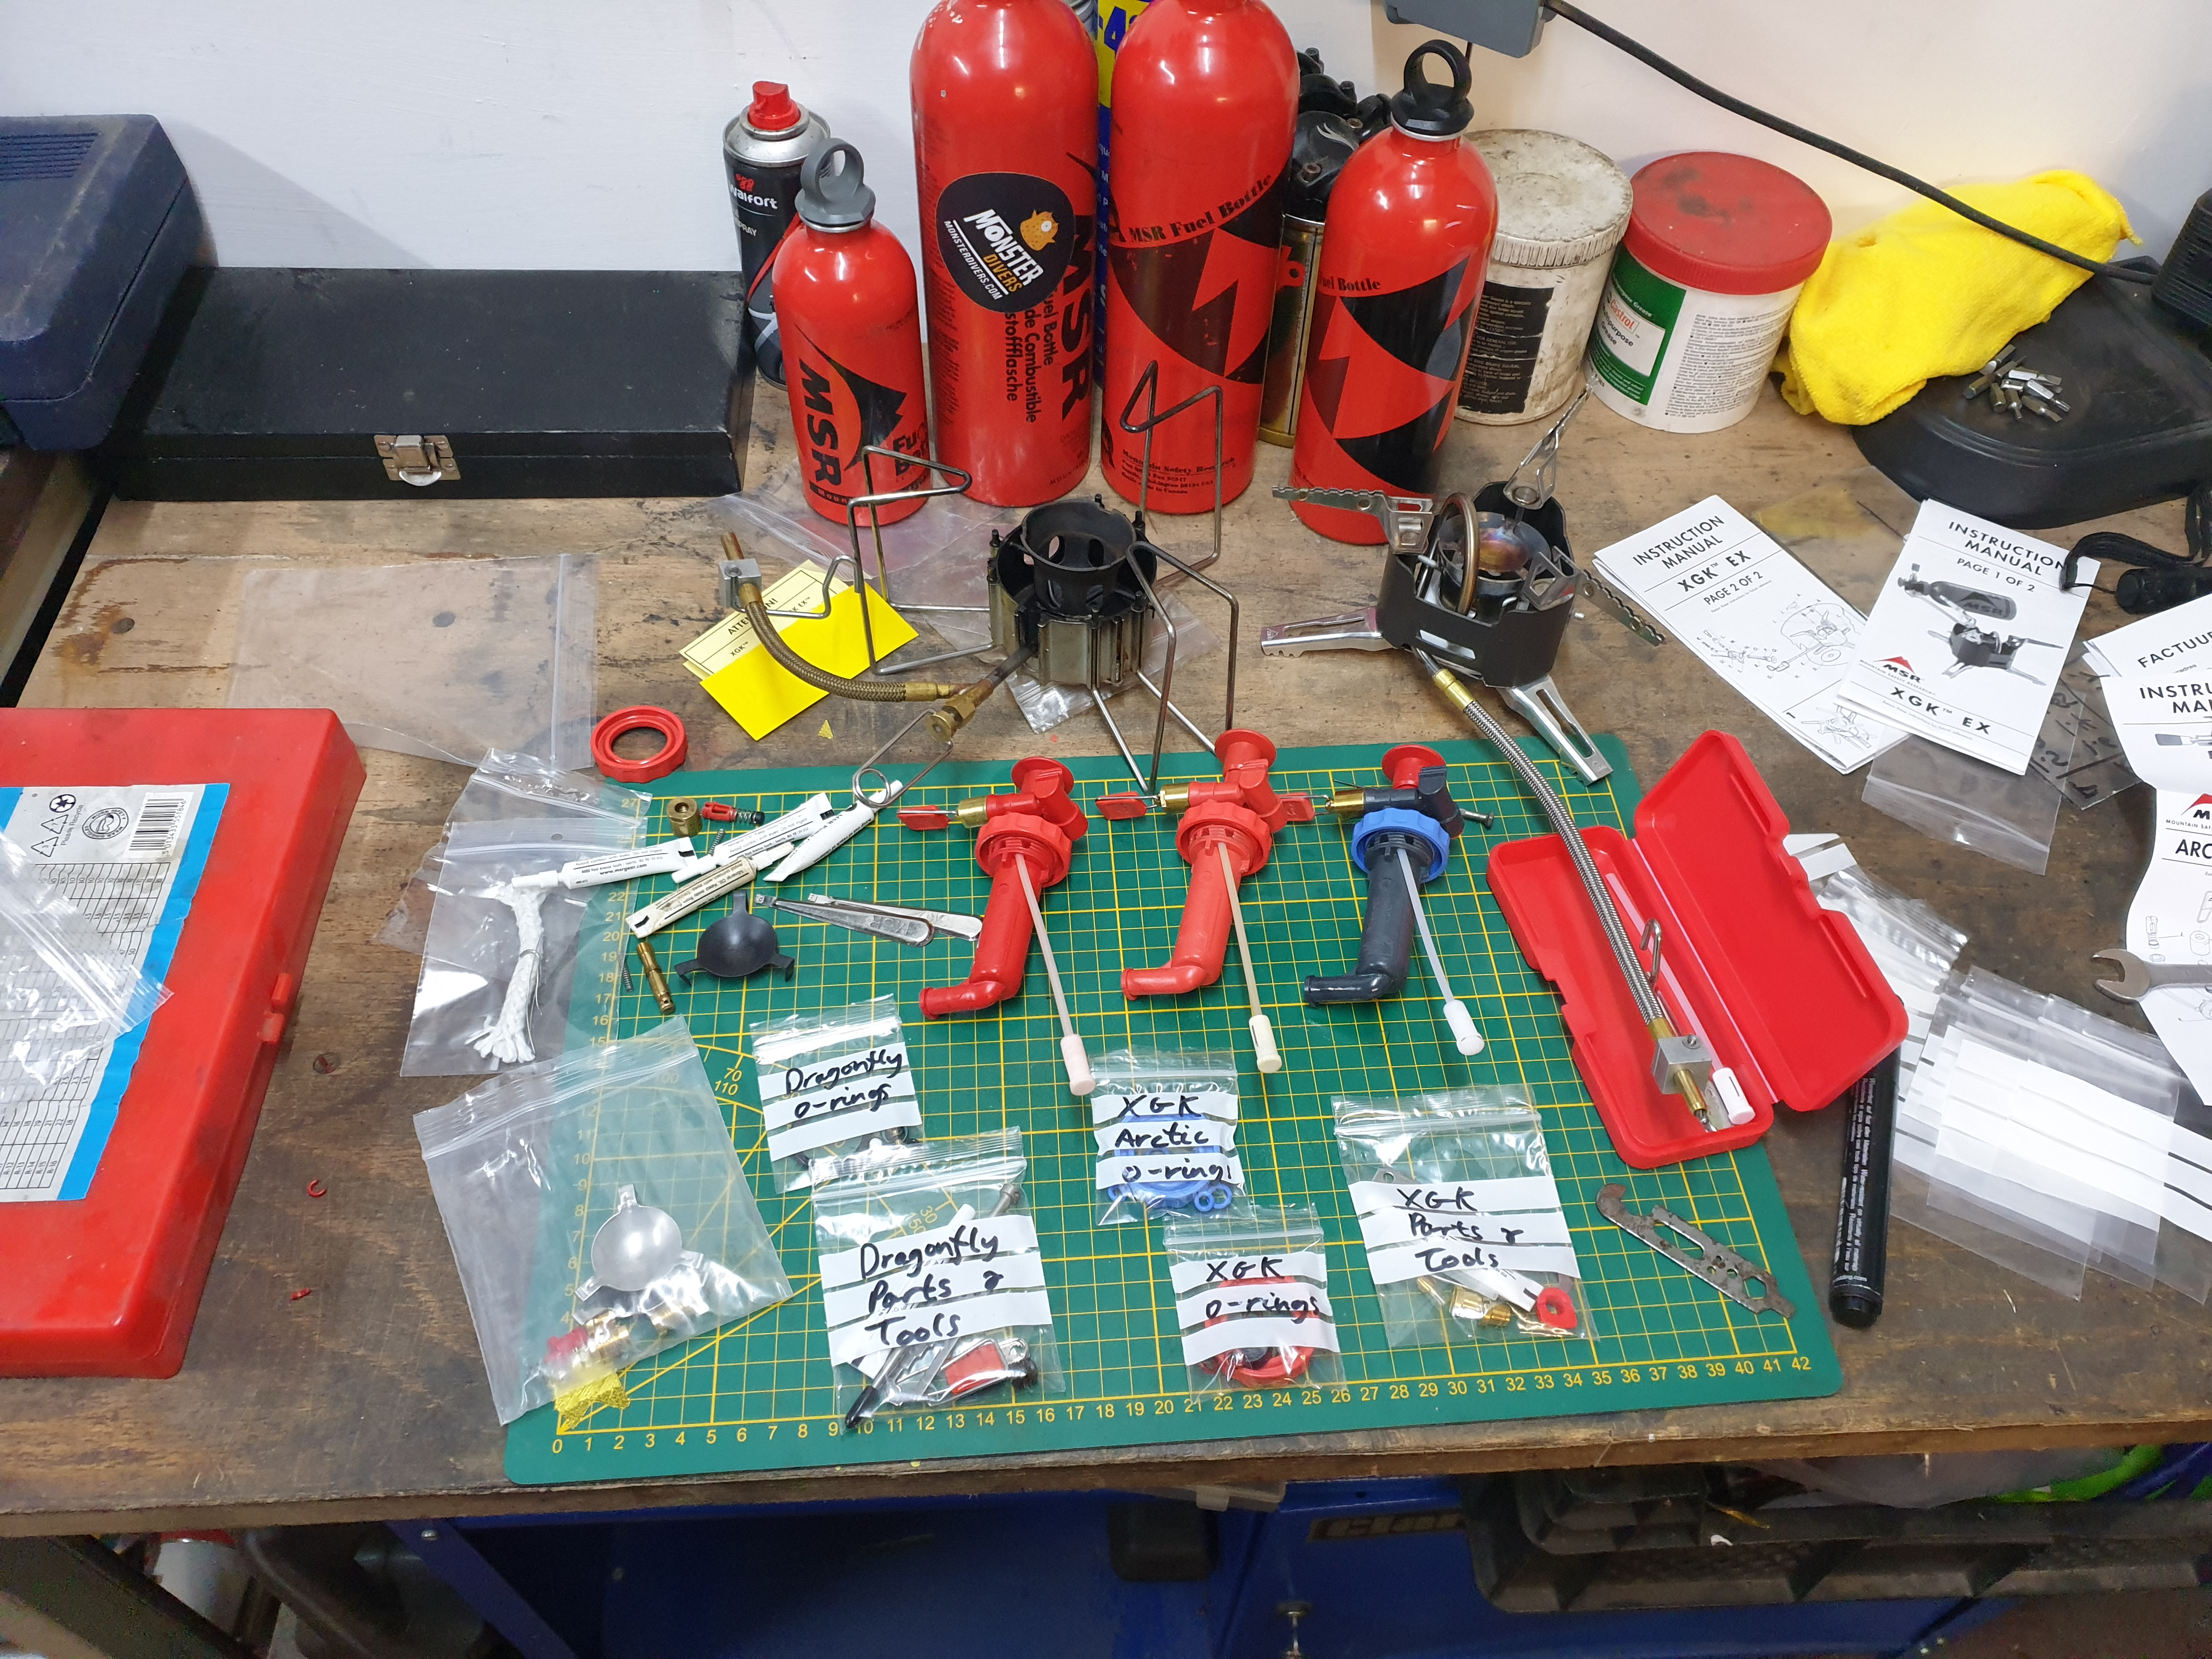 Servicing all the MSR stove components and preparing the spares